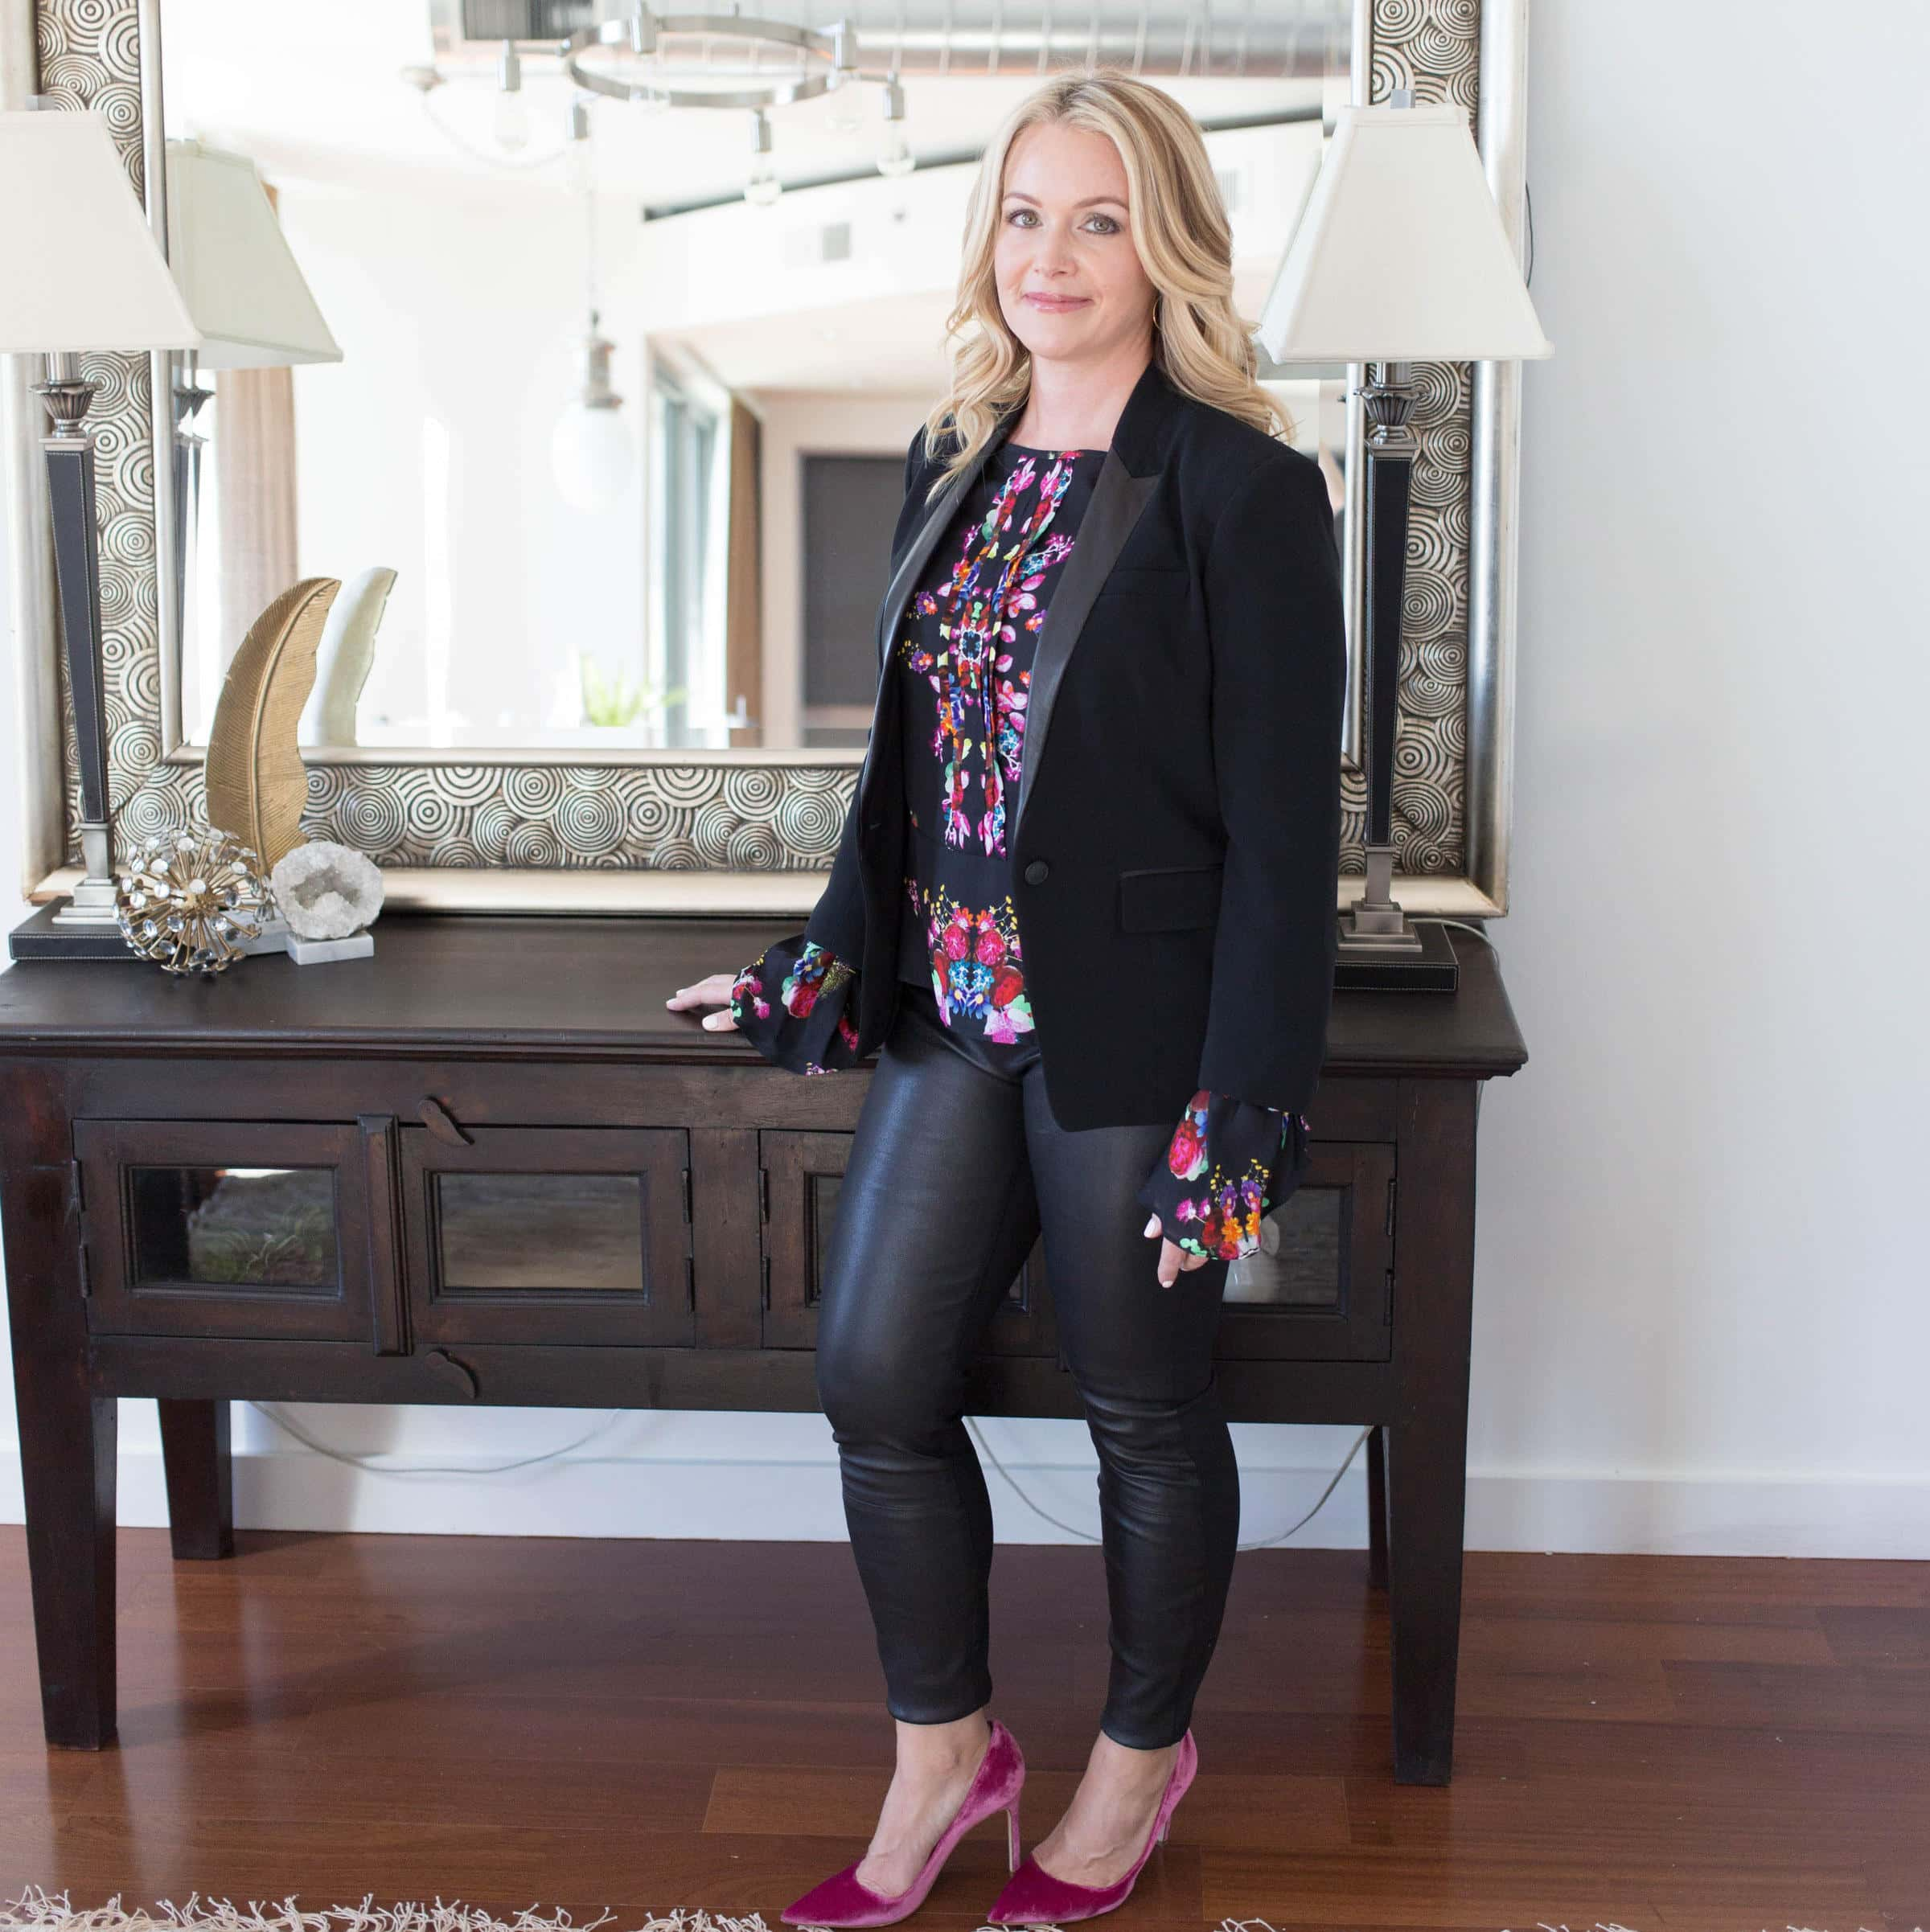 leather pants, jacket, blouse from #1, velvet heels